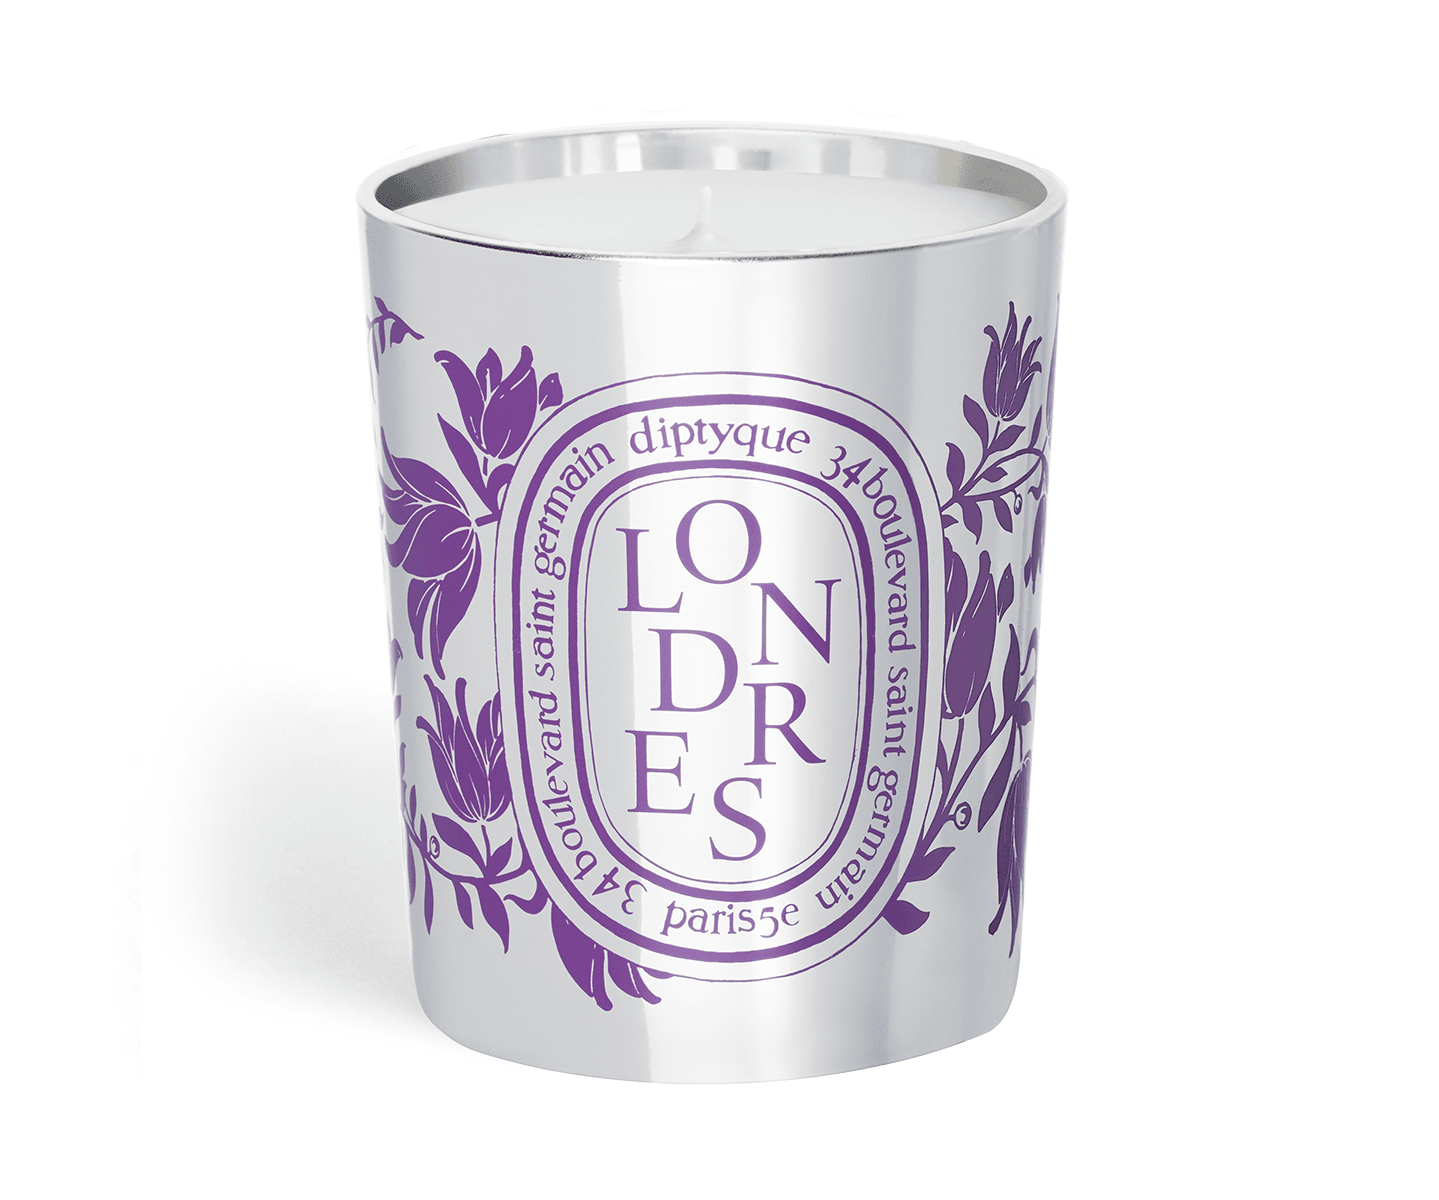 Diptyque London Candle